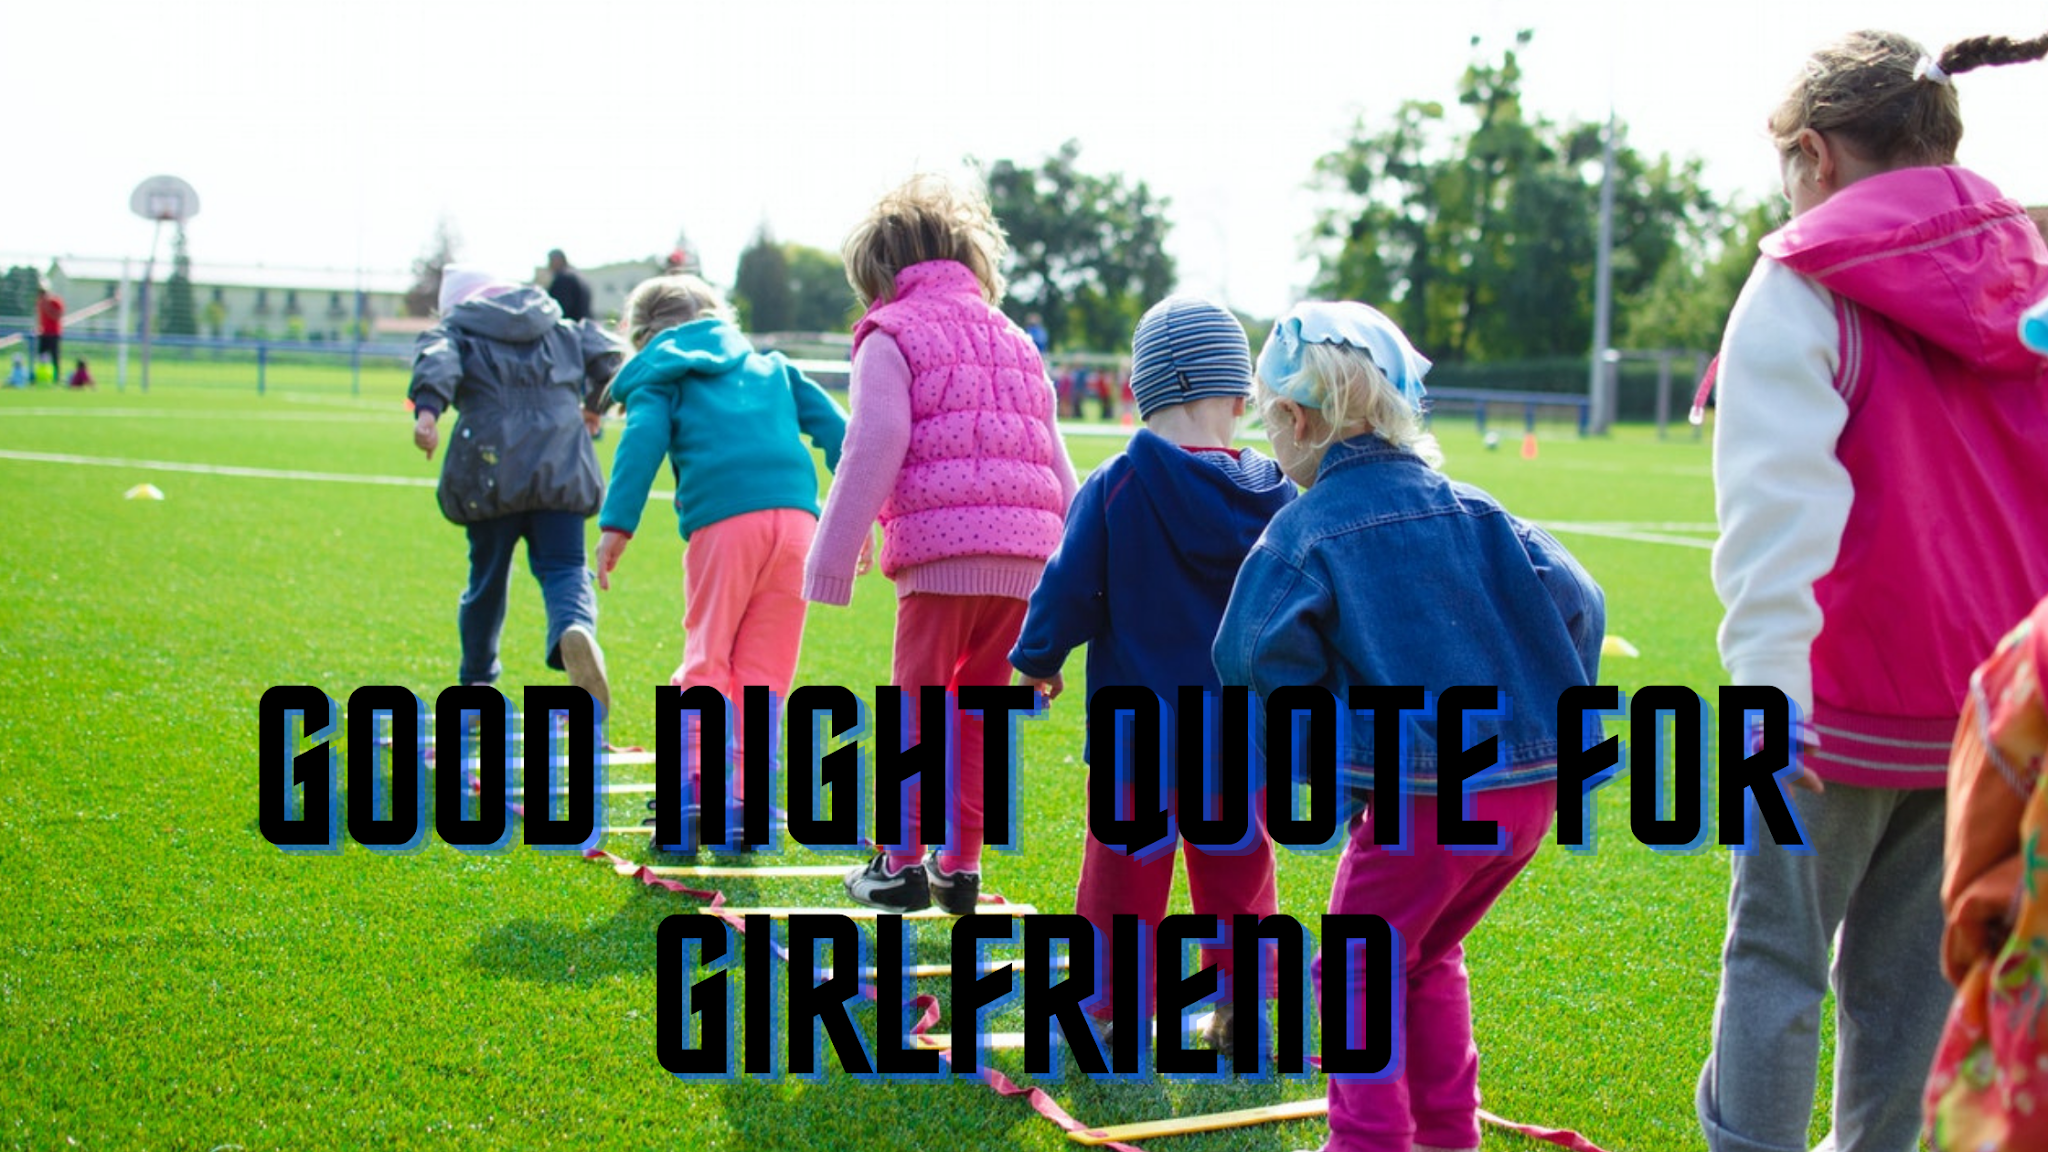 good night quote for girlfriend, good night messages for girlfriend, romantic good night sms for girlfriend in Hindi, good night love quotes for her, funny good night messages for girlfriend, good night message for girl, gn quotes for gf, best good night message for girlfriend, romantic good night message for girlfriend, good night message for girlfriend in Hindi, good night wishes for lover in Hindi, good night quotes to girlfriend, good night quotes for gf in Hindi, good night message for lover in Hindi, girlfriend good night message, gn wishes for gf